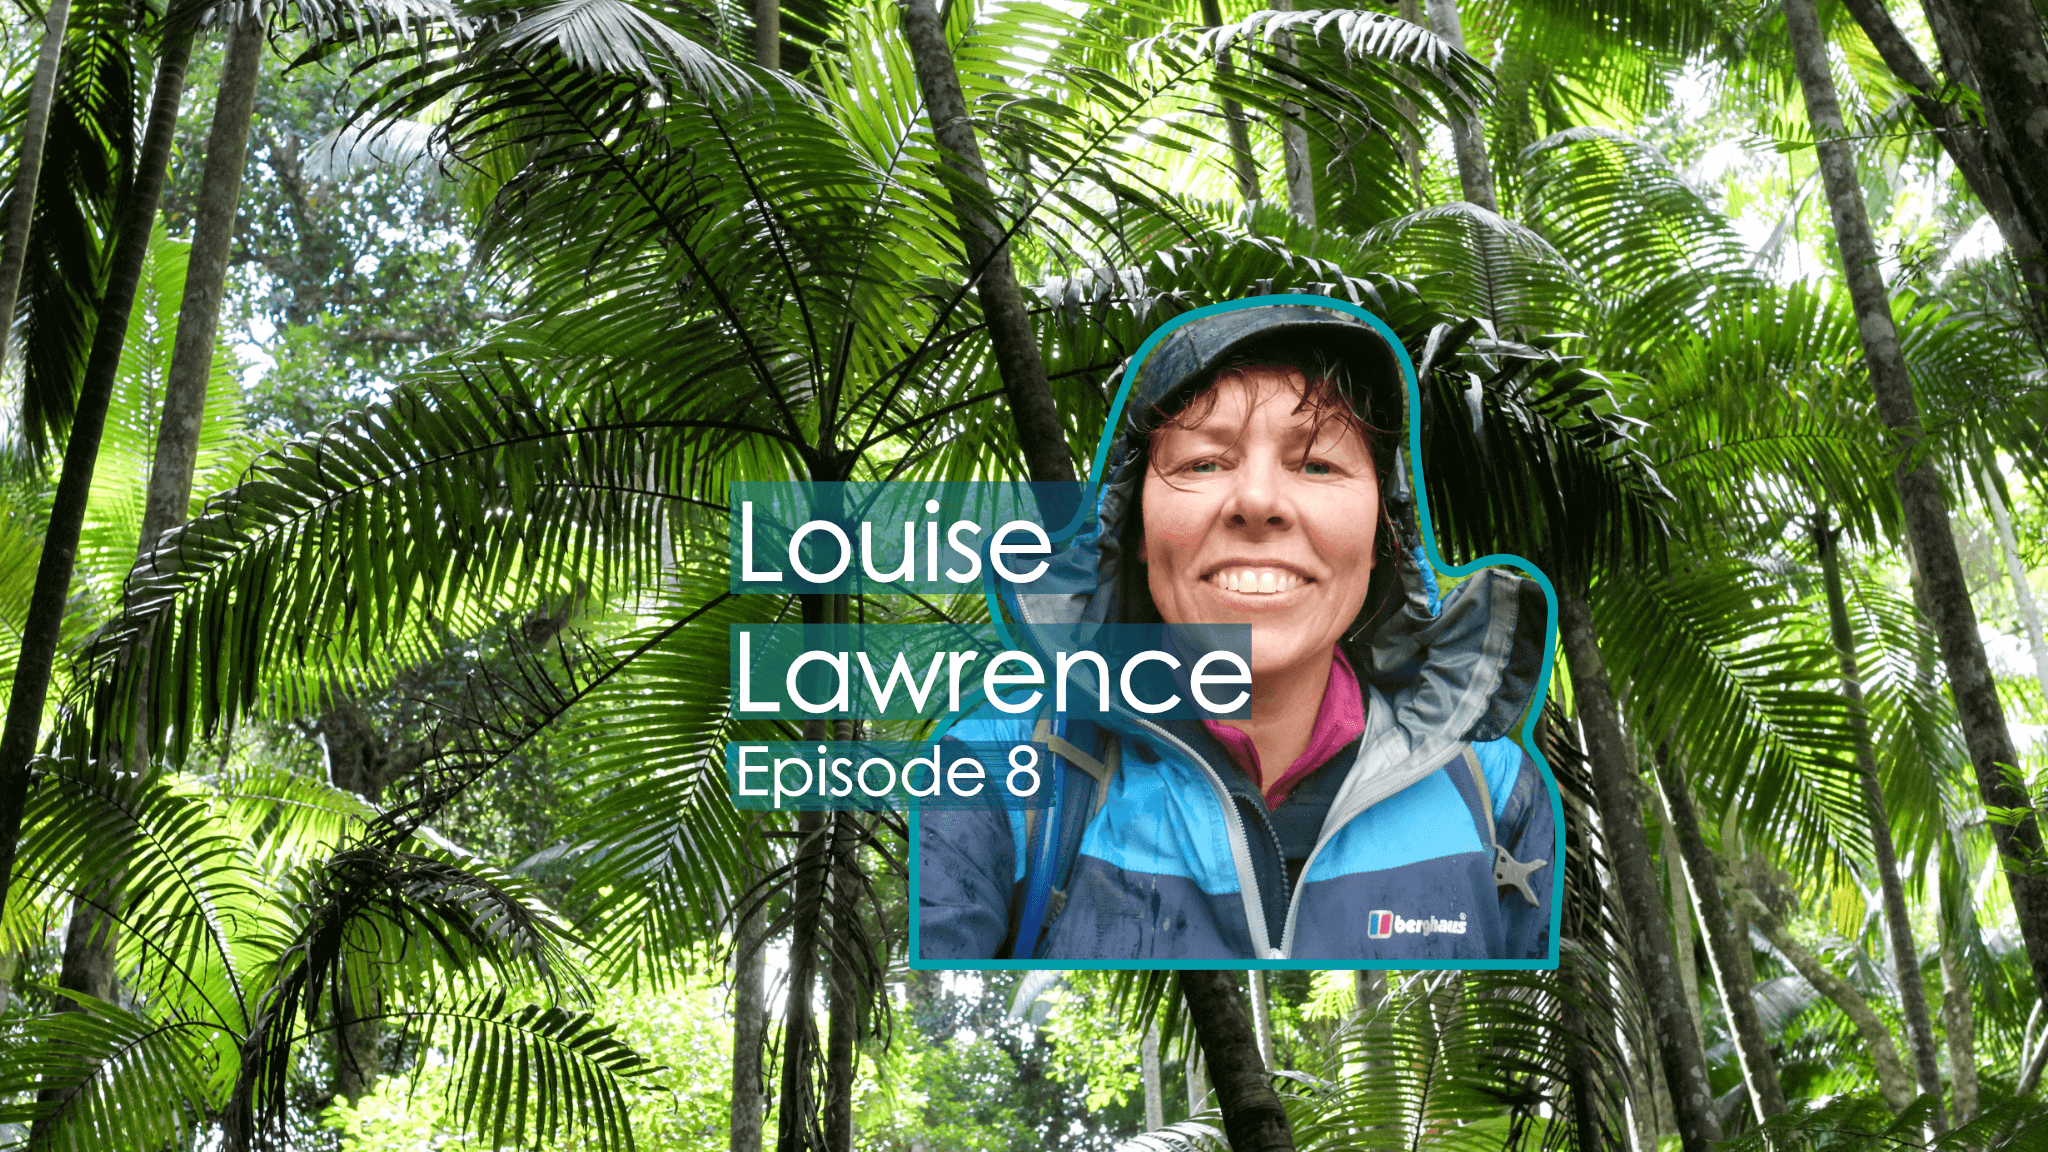 Earth's Edge Podcast Louise Lawrence